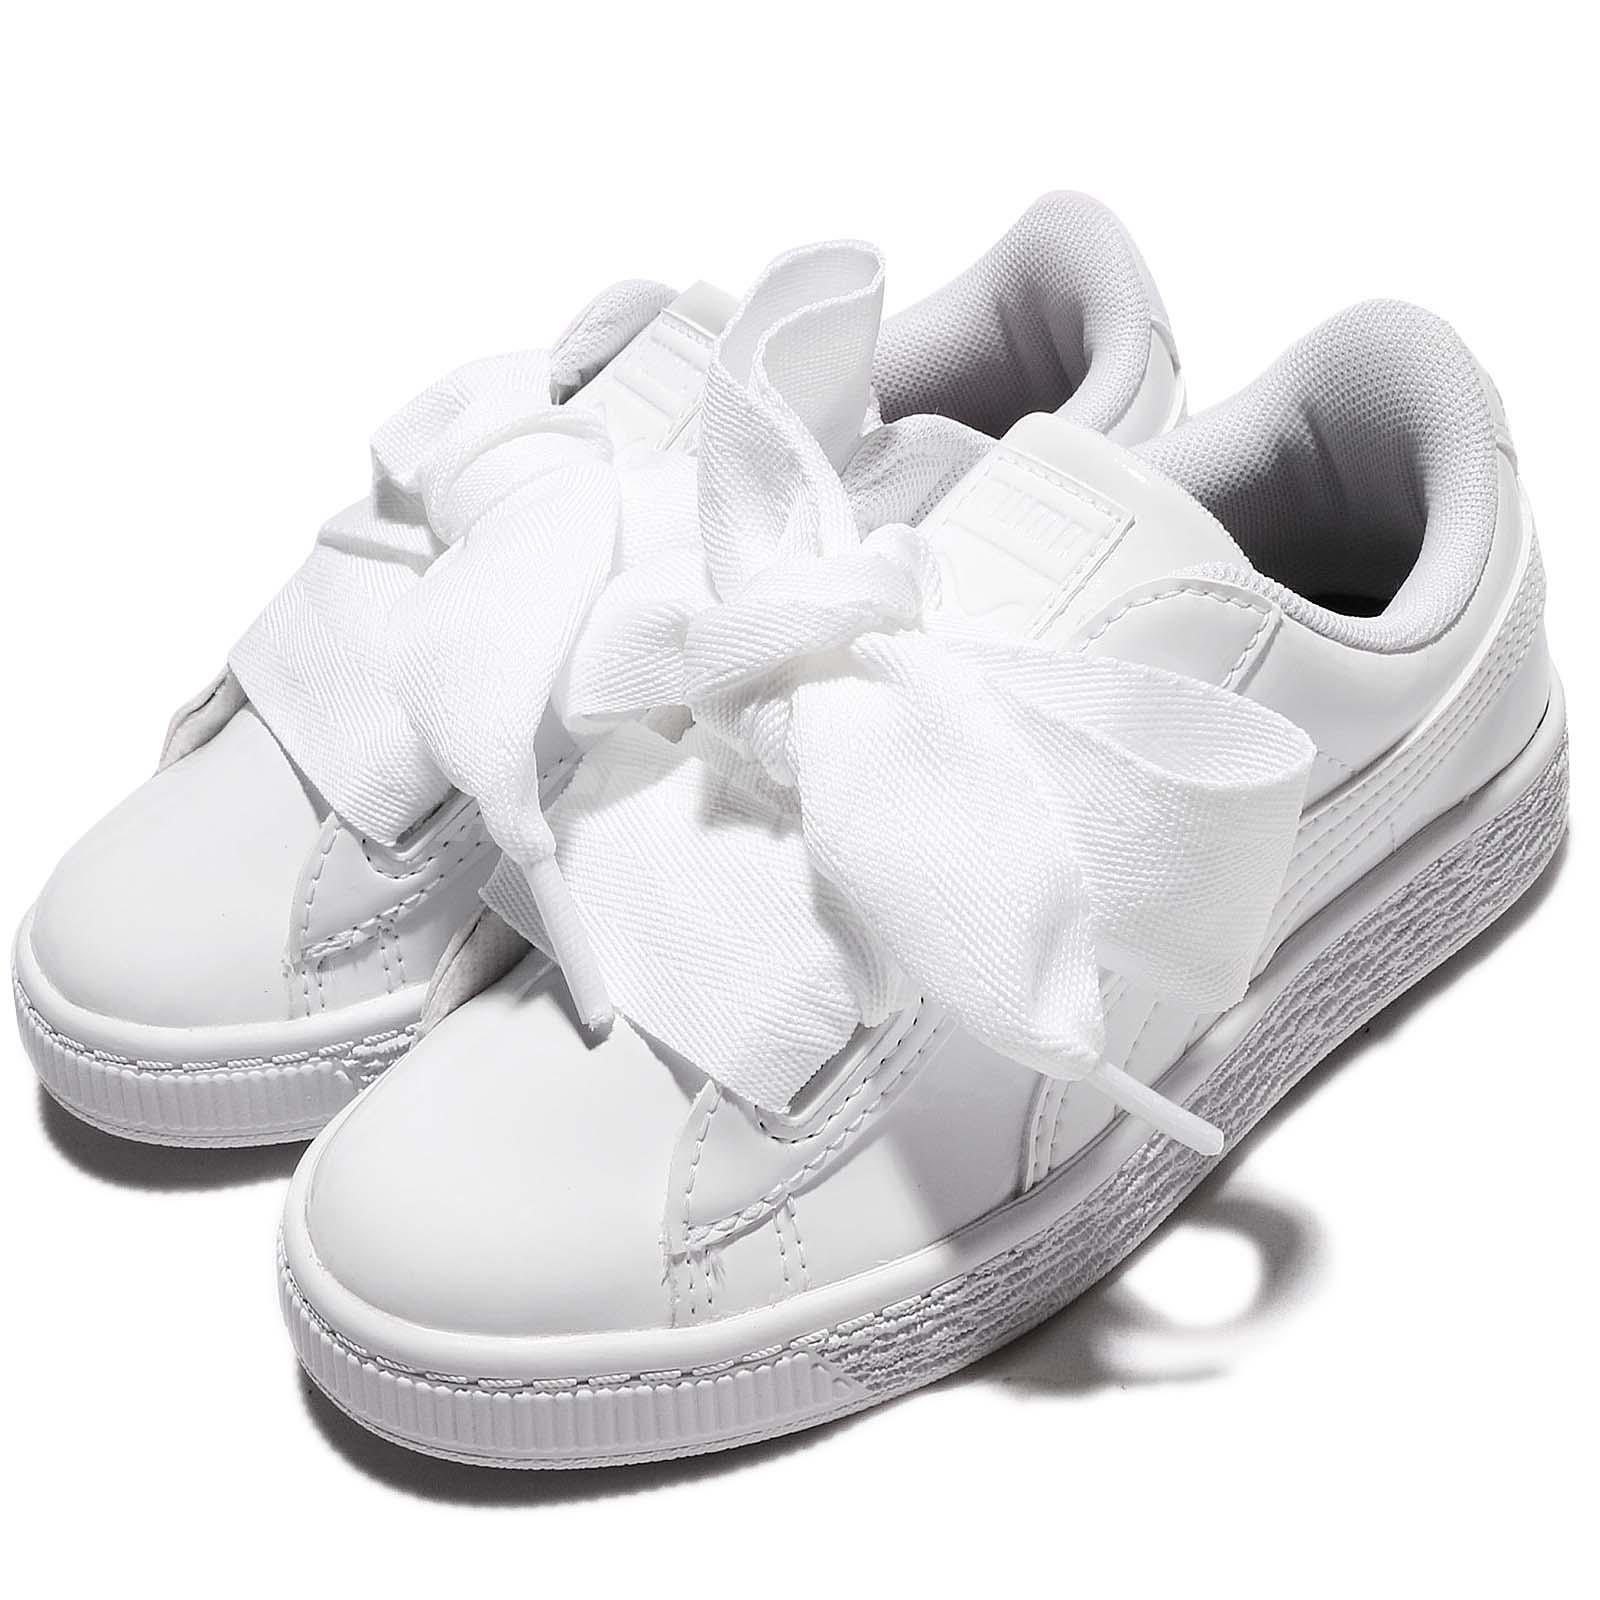 Details about Puma Basket Heart Patent PS Leather White Kids Junior Girls  Shoes 36335202 80e23b159799c